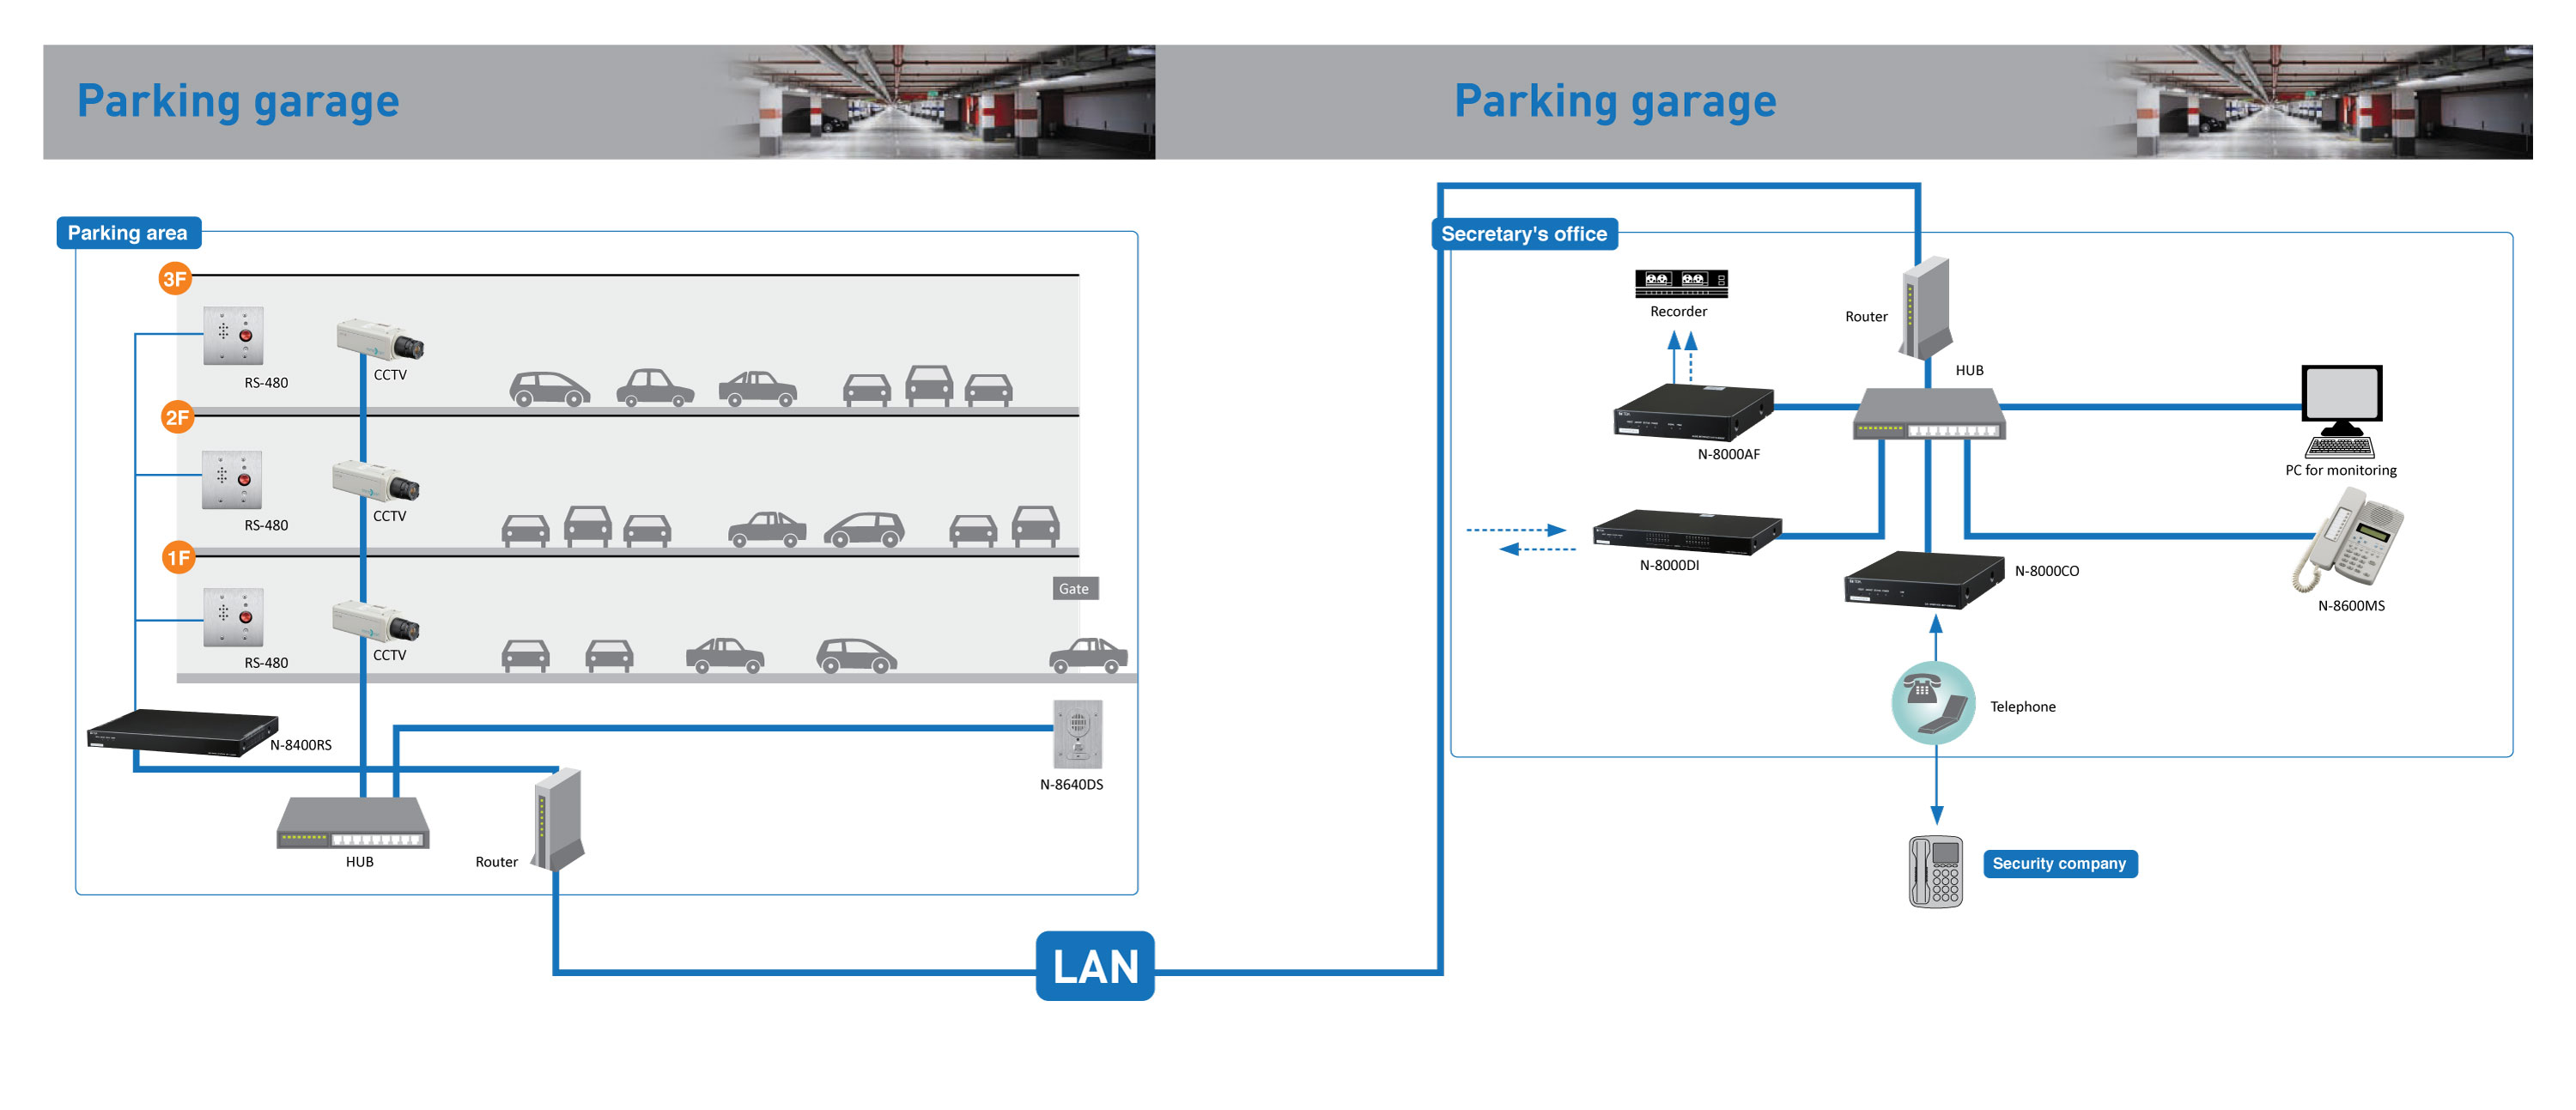 N-8000 Application for a Parking Lot